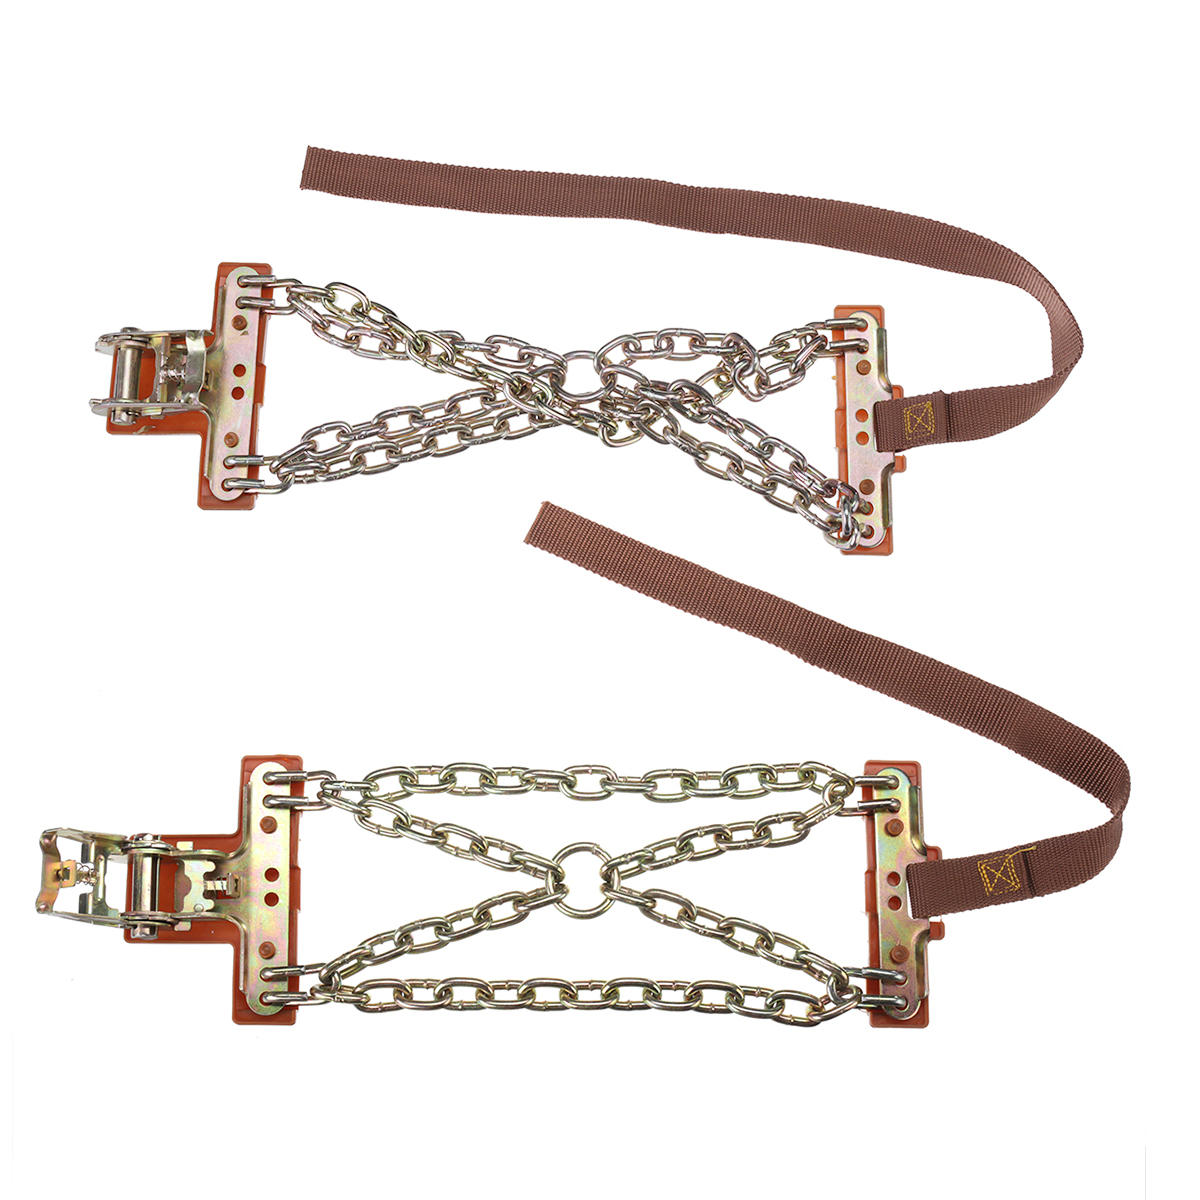 Steel Winter Emergency Car Snow Chain Truck Wheel Tyre Anti-skid Safety Belt S/L Safe Driving For Ice Sand Muddy Offroad